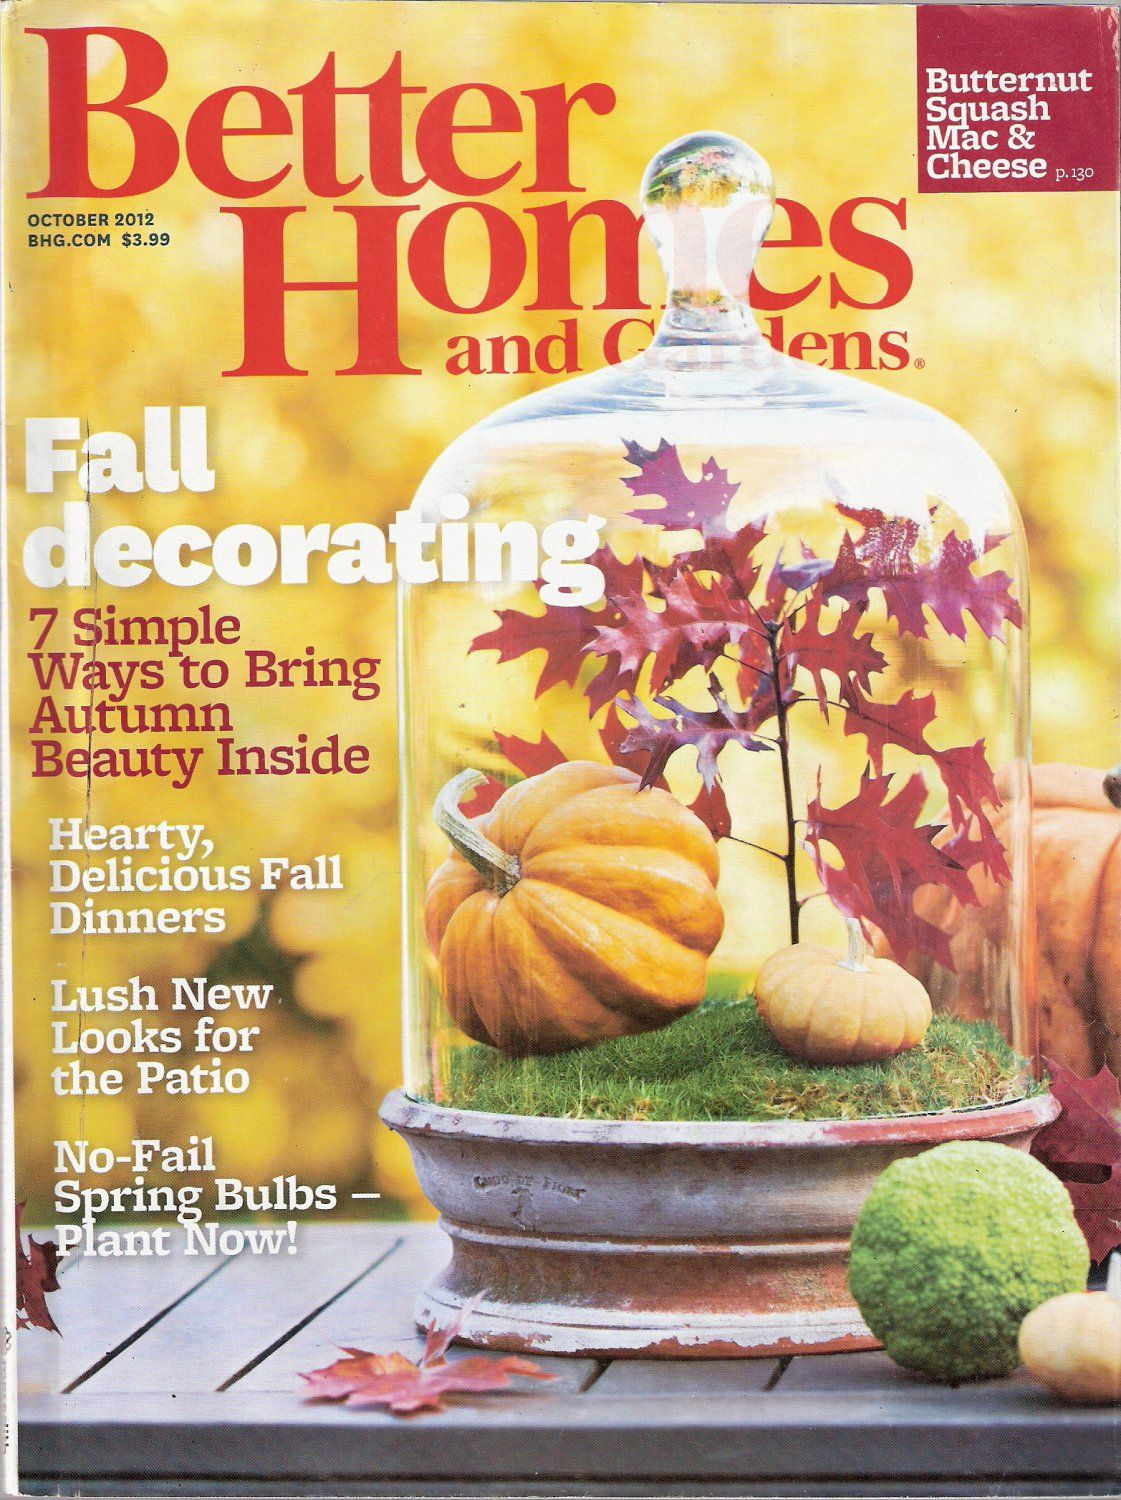 b90e5df53e1a2828810a8afa663f2452 - Better Homes And Gardens Magazine Unsubscribe